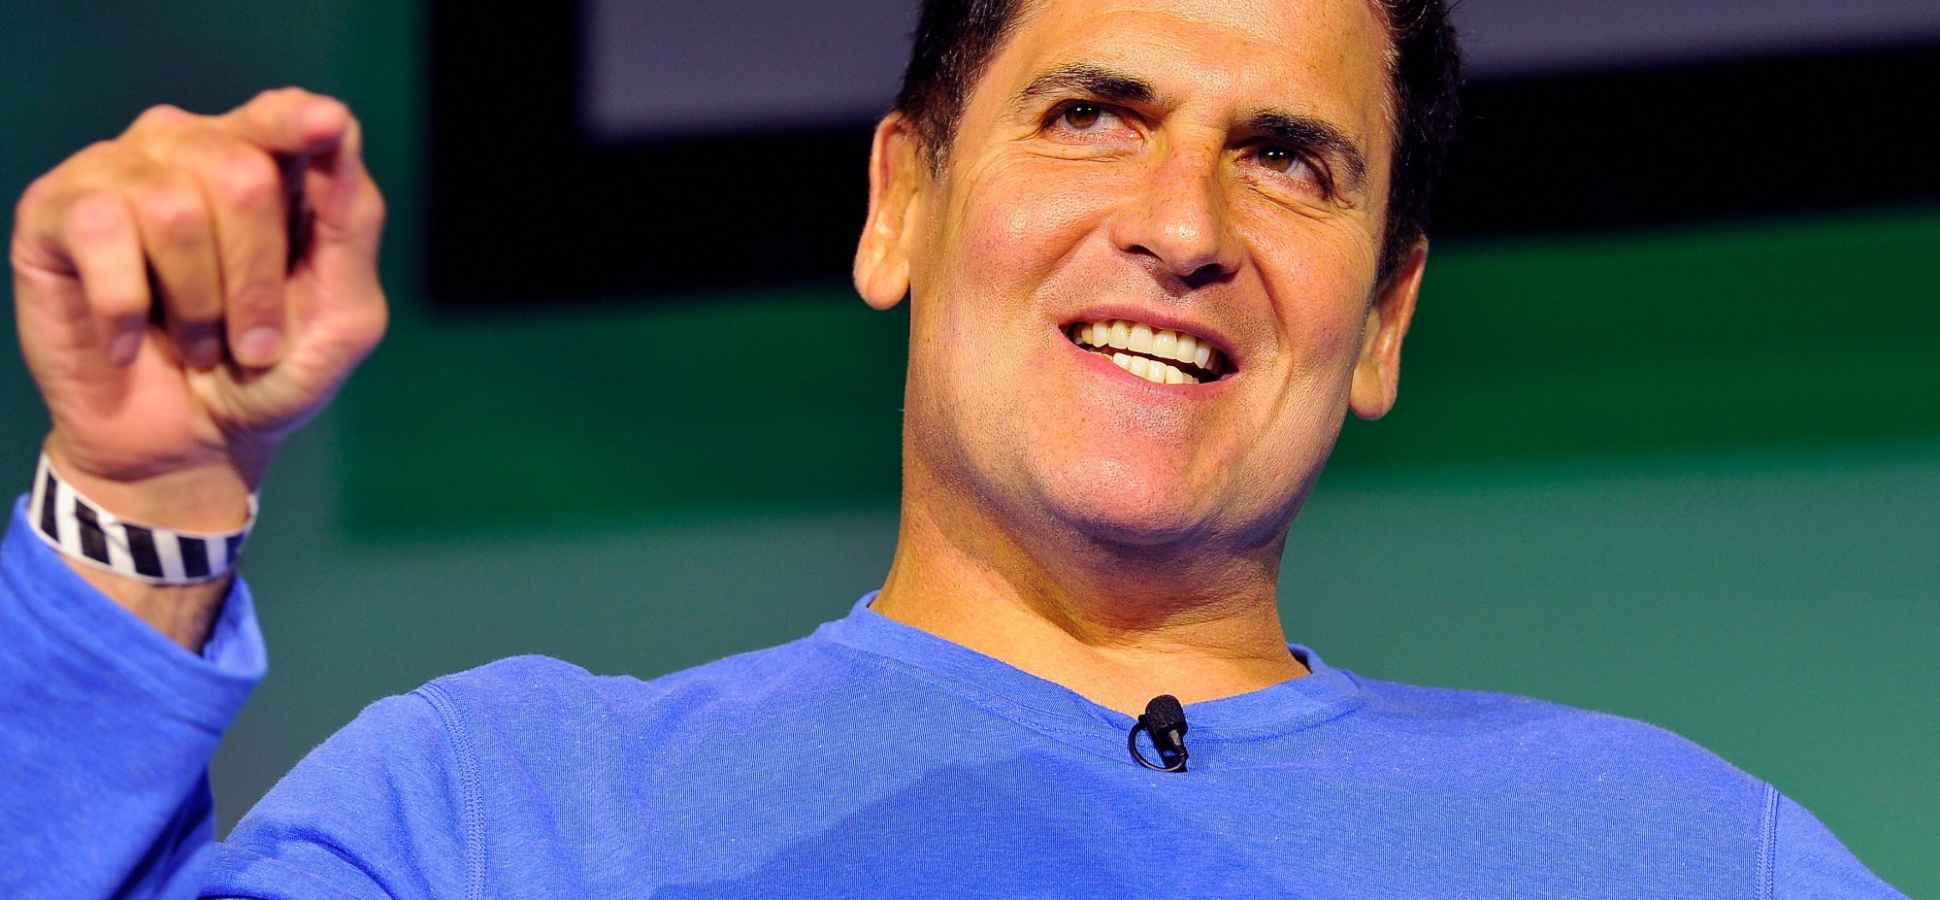 Mark Cuban Recommends These 5 Books for Entrepreneurs